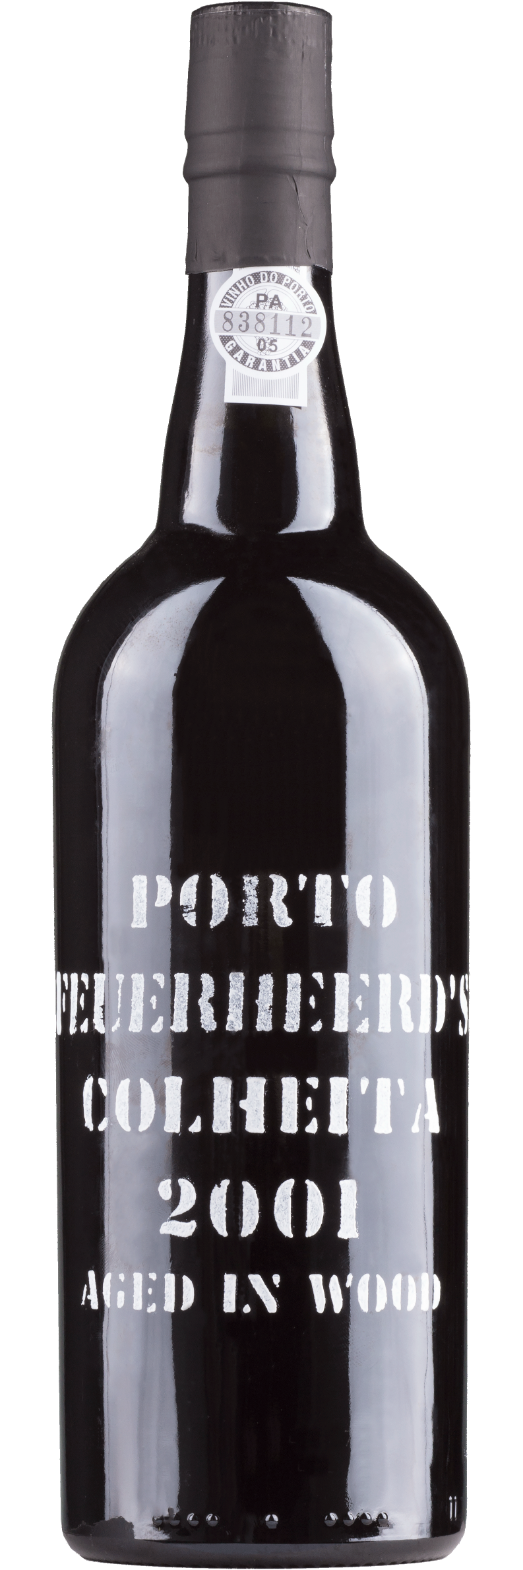 Feuerheerds Colheita 2001 Port 75CL